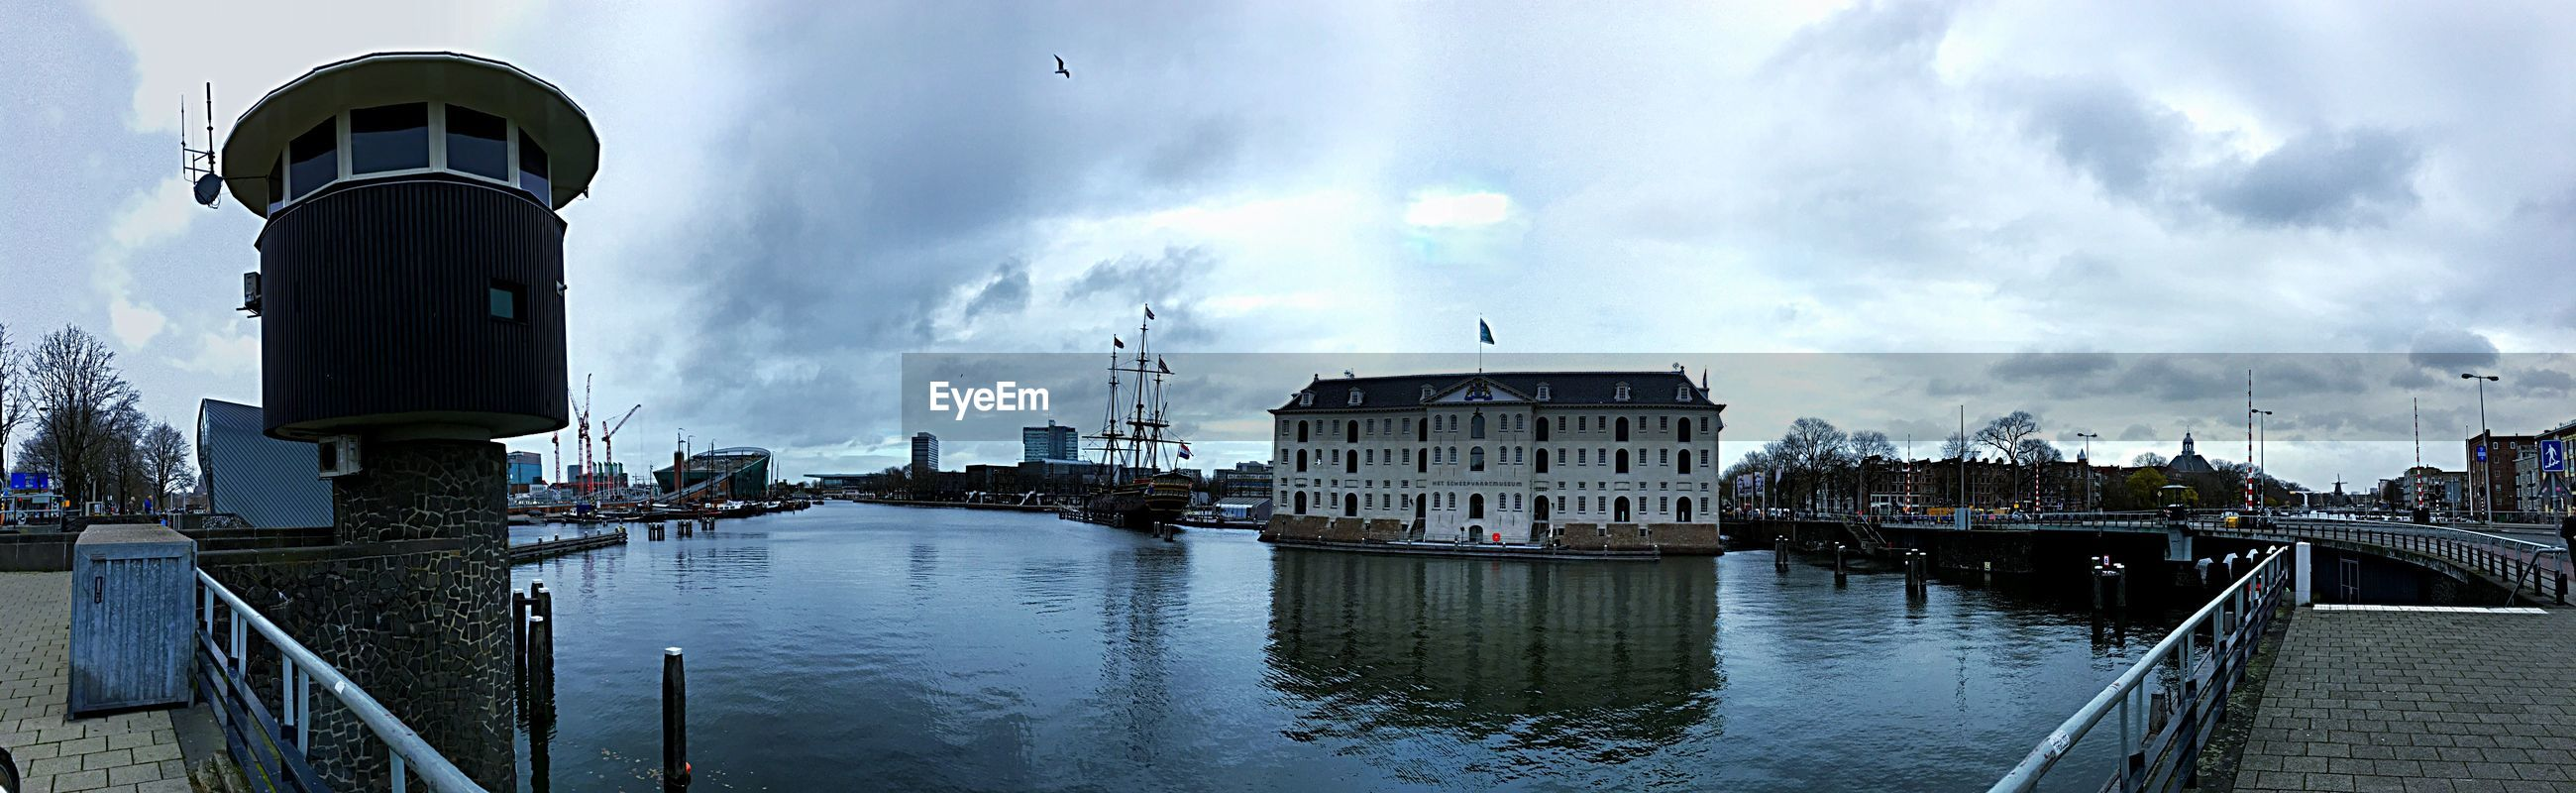 PANORAMIC VIEW OF BUILDINGS AND RIVER AGAINST SKY